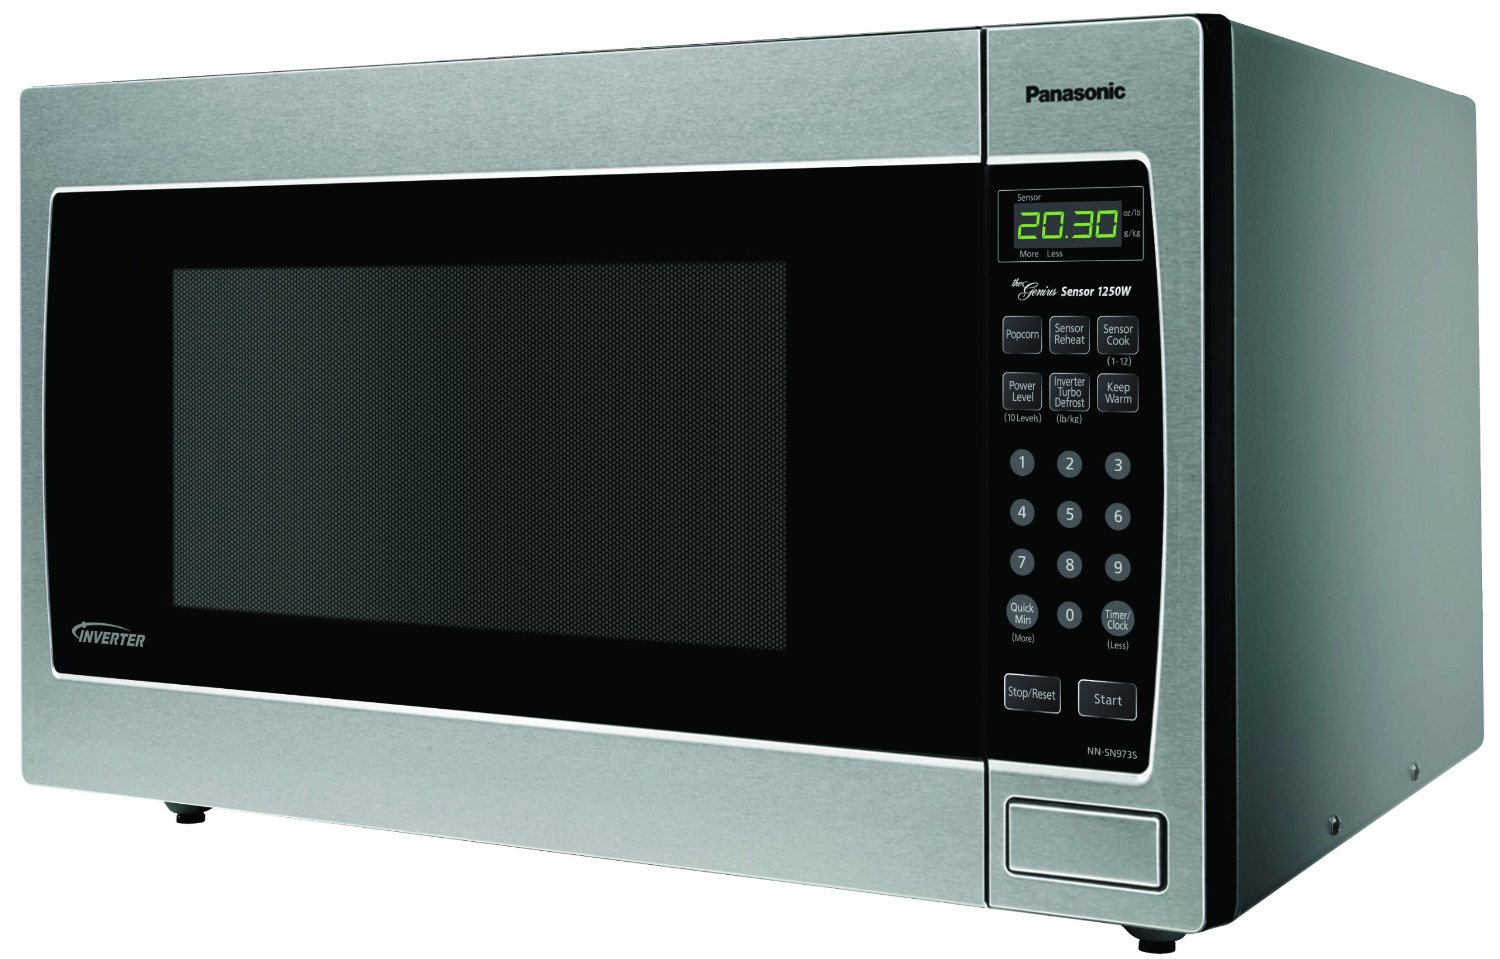 Revealed Best Stainless Steel Microwave Oven Designs